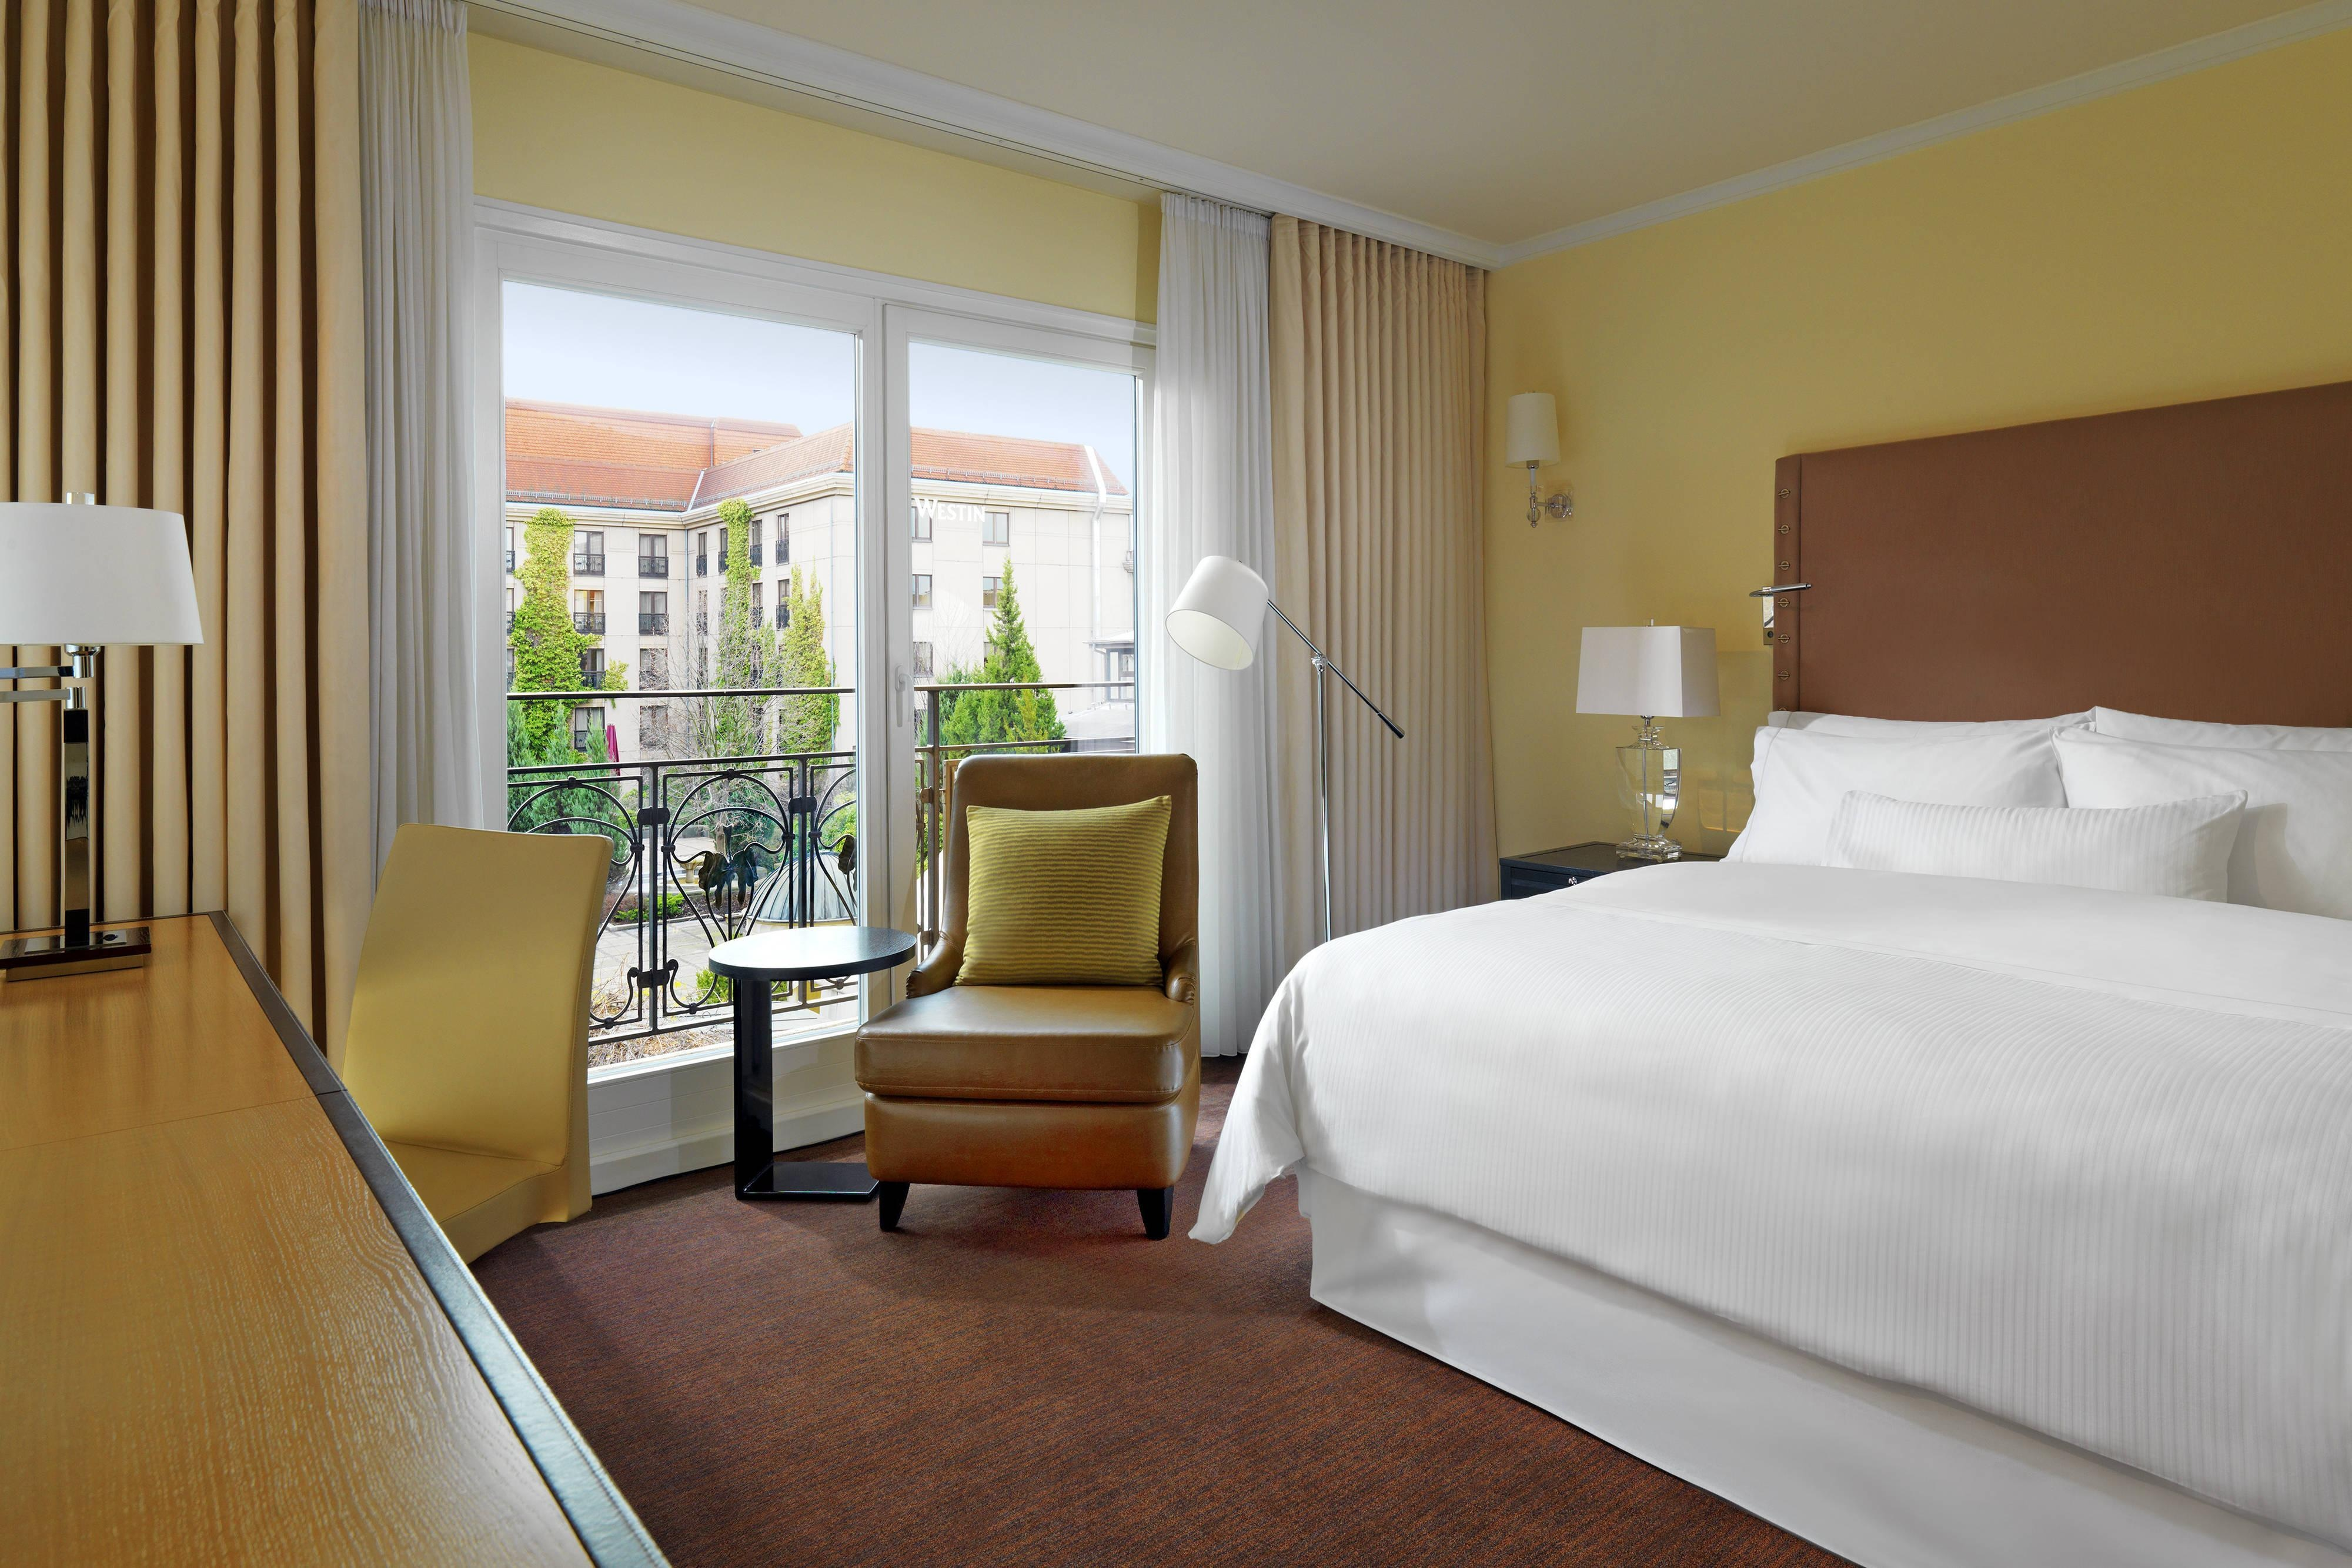 Garden Superior rooms Berlin at The Westin Grand hotel